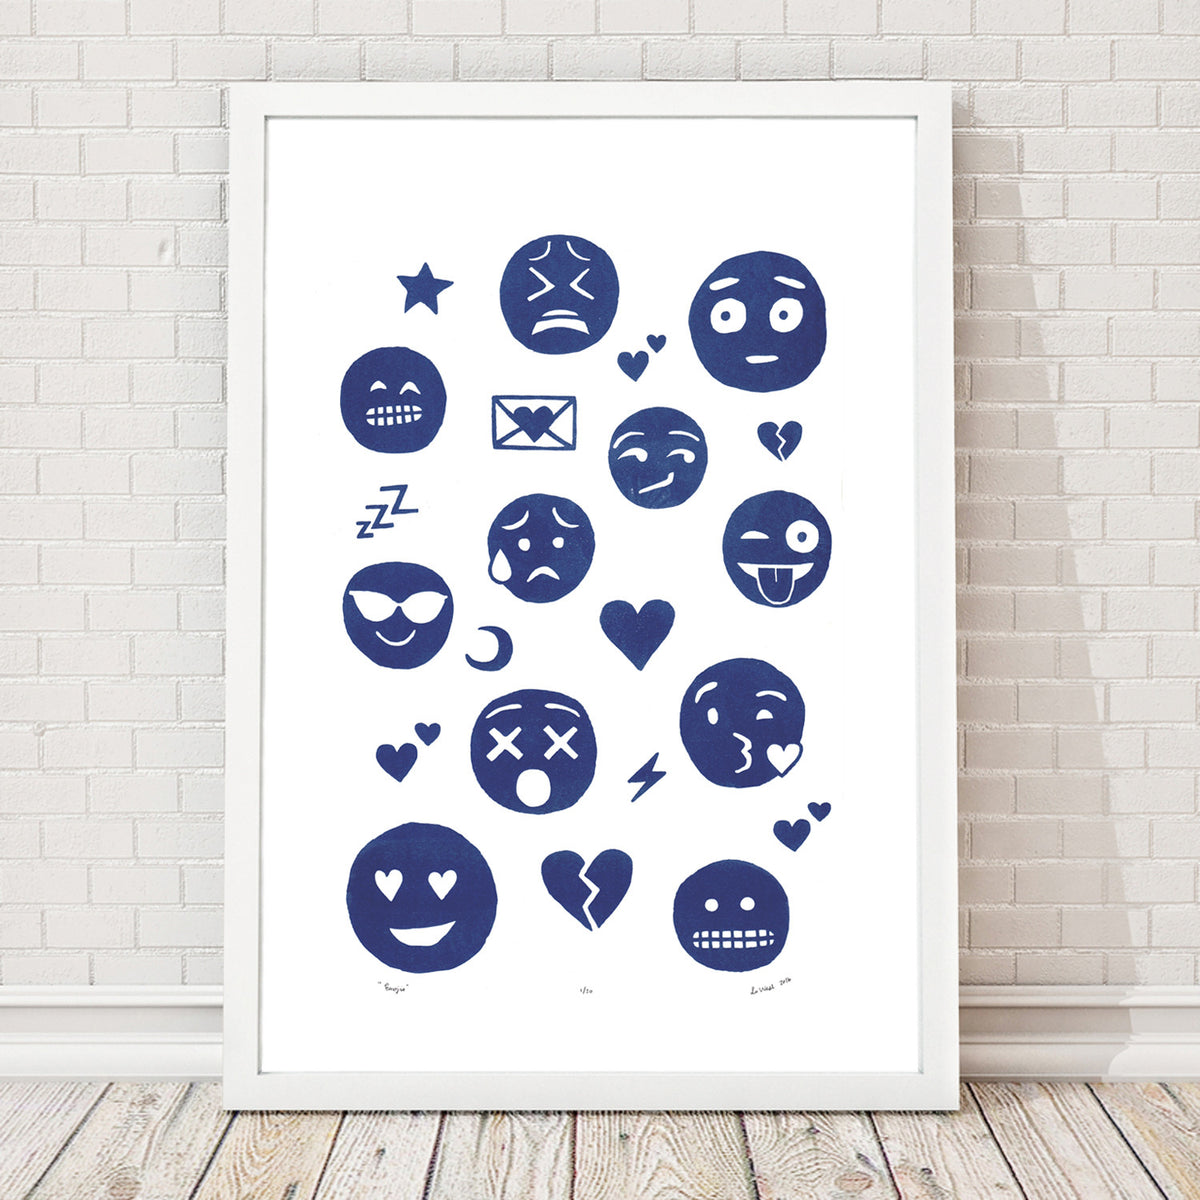 A playfully illustrated graphic print featuring your favourite emojis. This quirky, one-of-a-kind art print will make a witty conversation piece in your home.